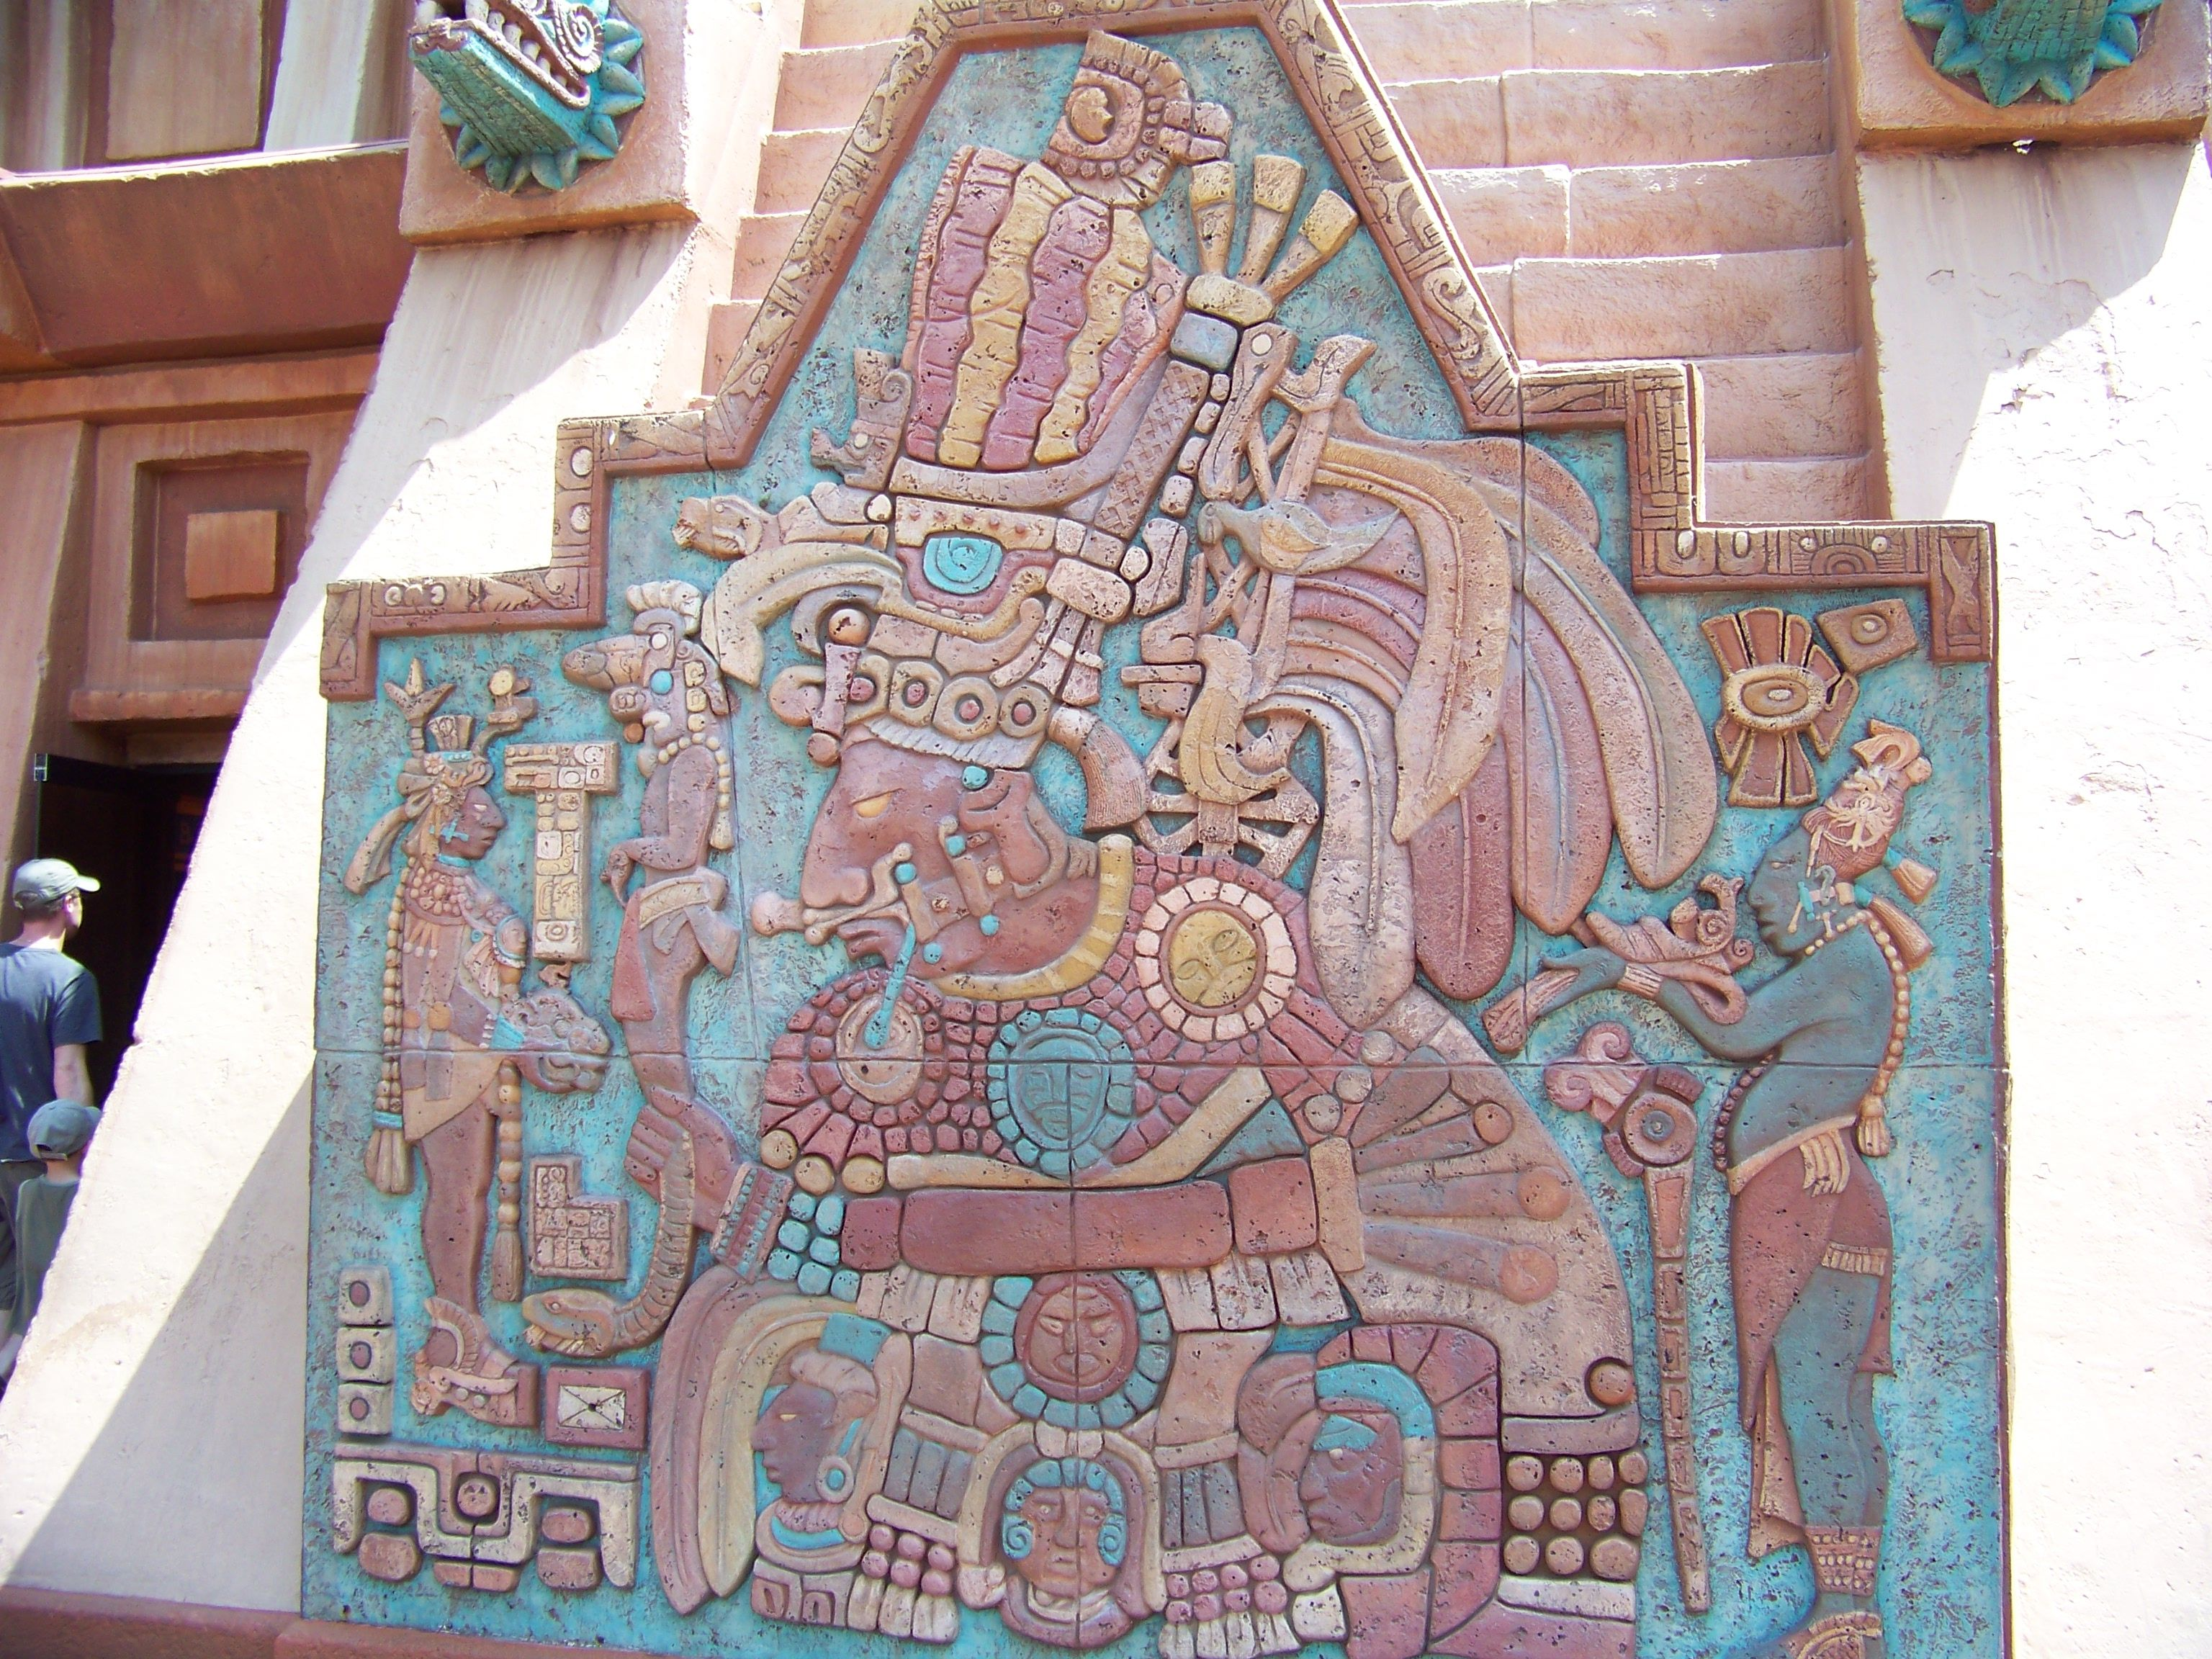 Relief Carving on pyramid modeled after Aztec Temple of Quetzalcoatl at Teotihuacan.  Mexico Pavilion, Epcot